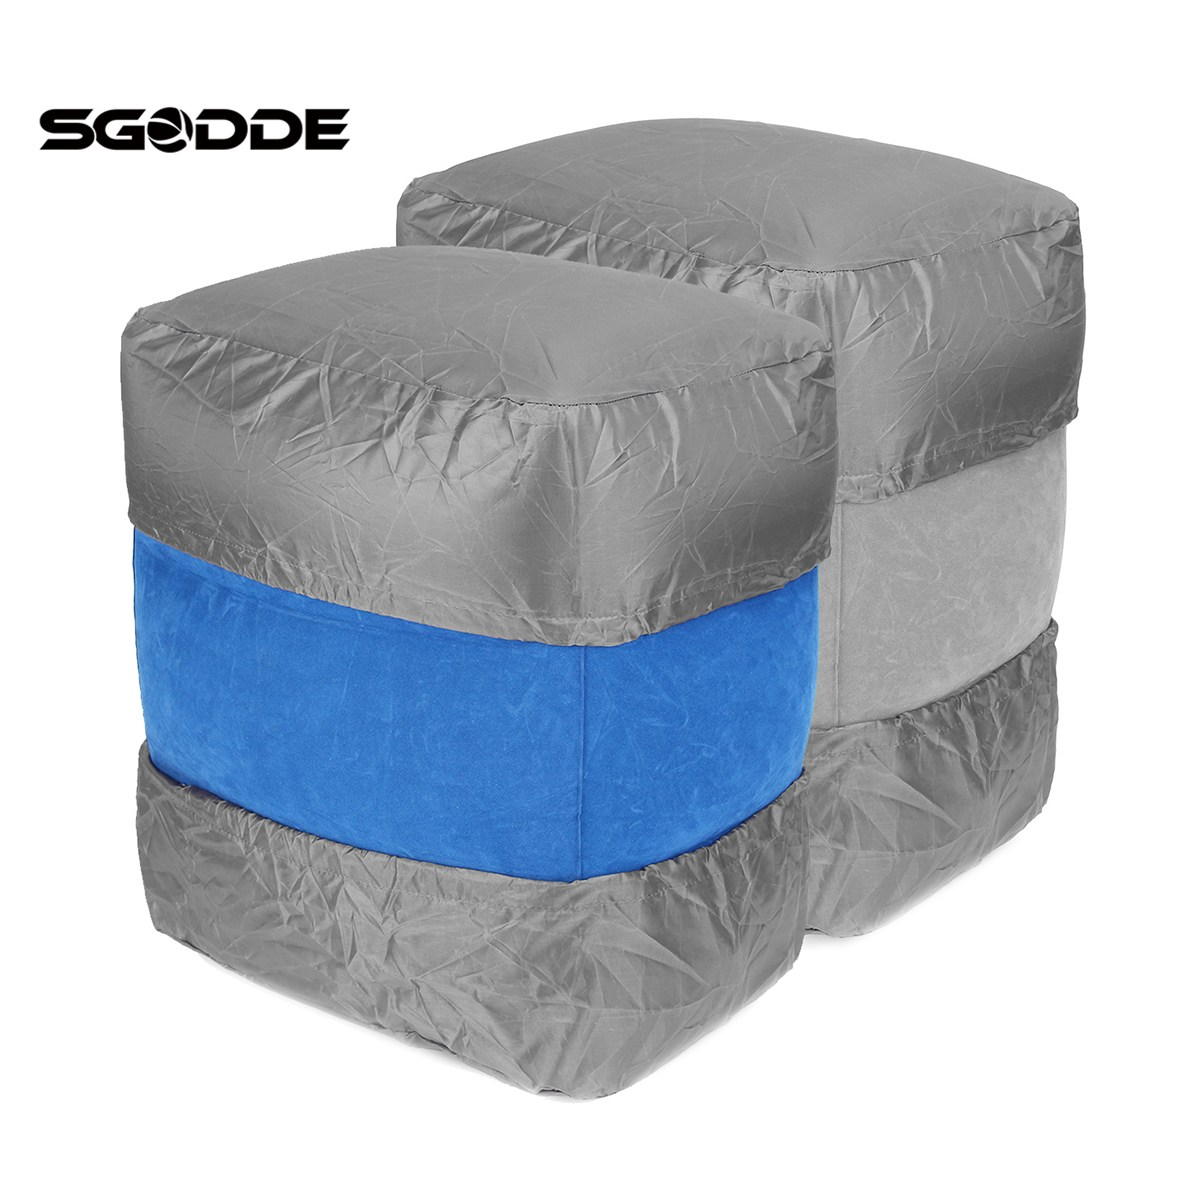 SGODDE Convenient Children Cars Airplane Inflatable Travel Footrest Parallel Seat Sleep Pillow for Outdoor Rest Tools